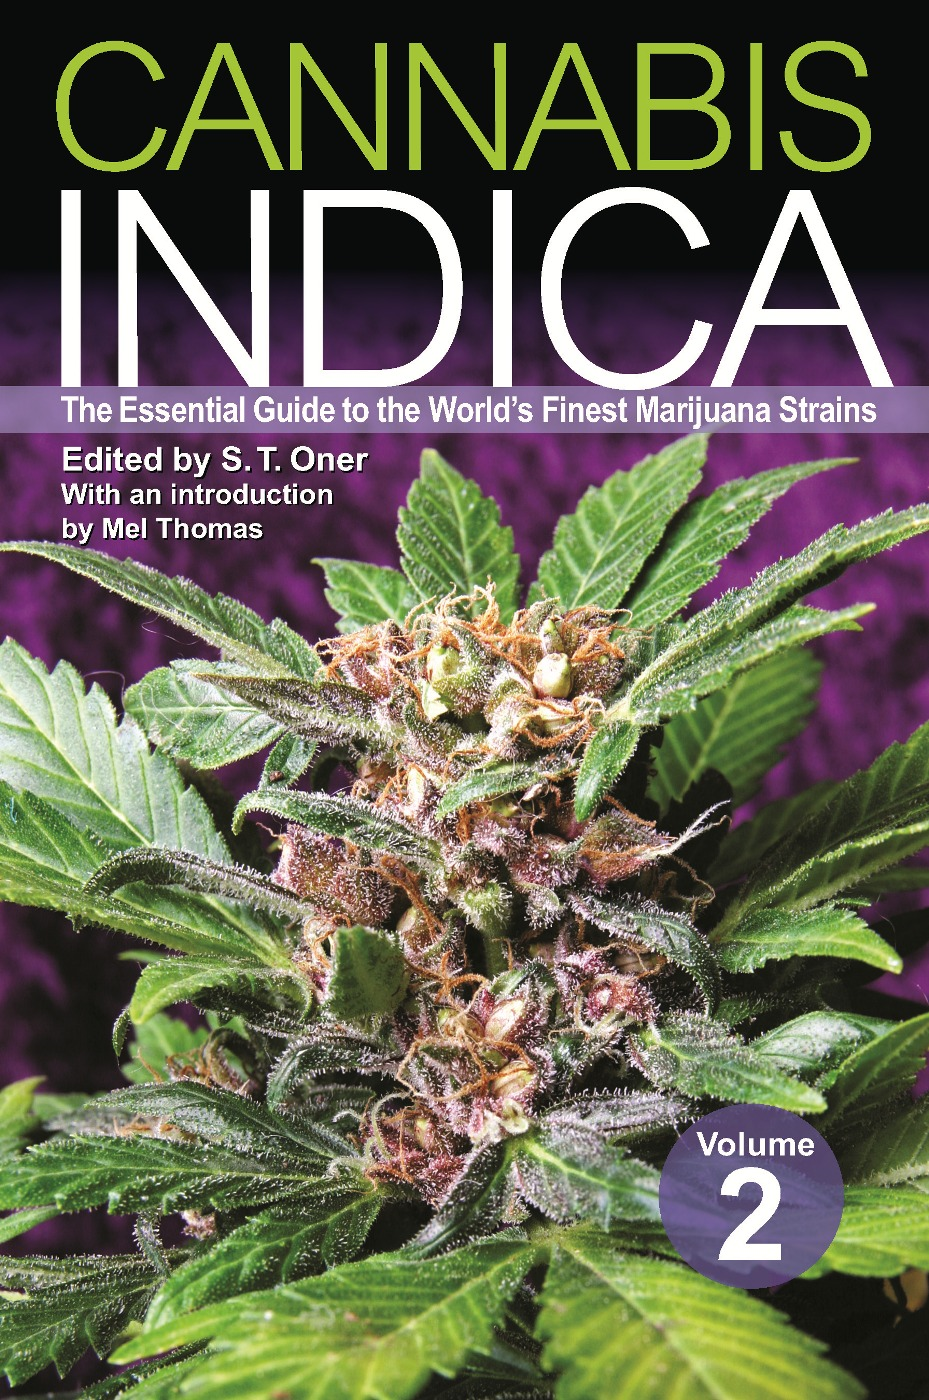 Cannabis Indica Volume 2: The Essential Guide to the World's Finest Marijuana Strains By: